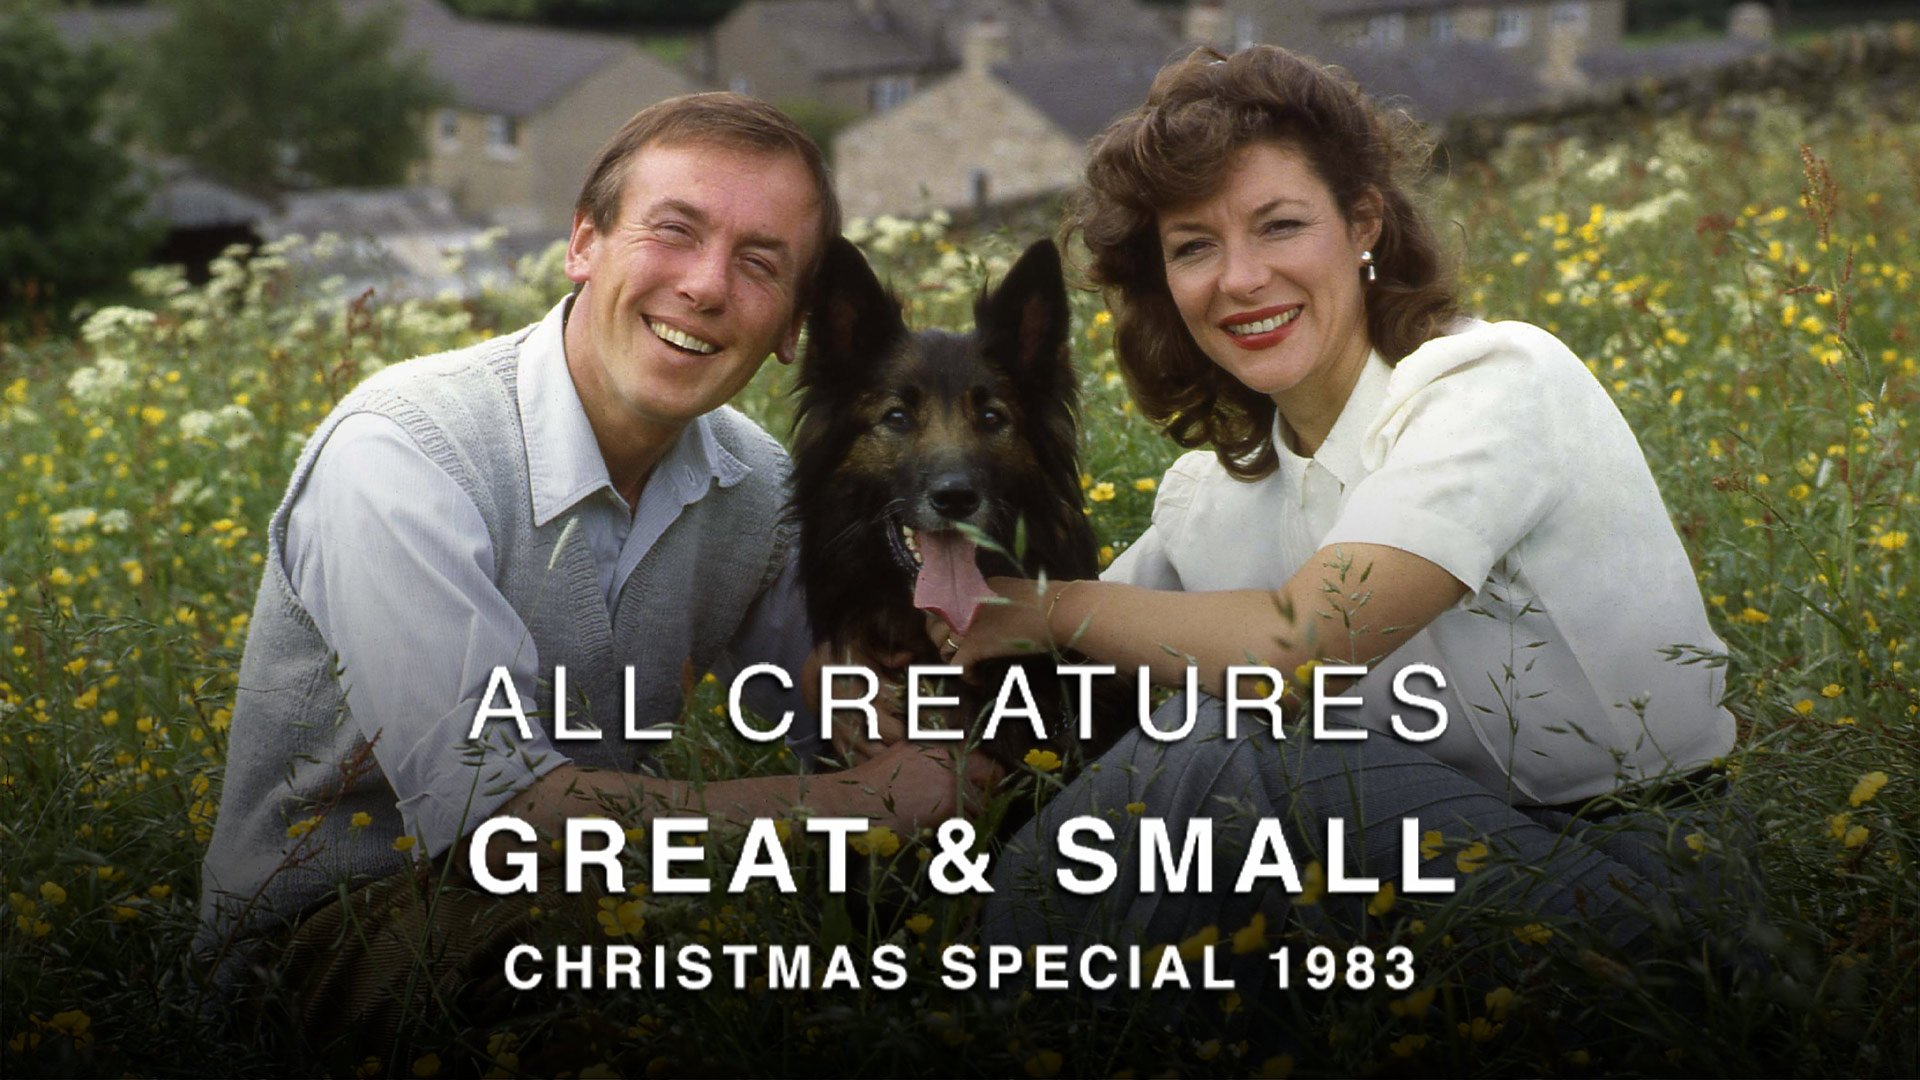 All Creatures Great and Small Christmas Special 1983 on BritBox UK